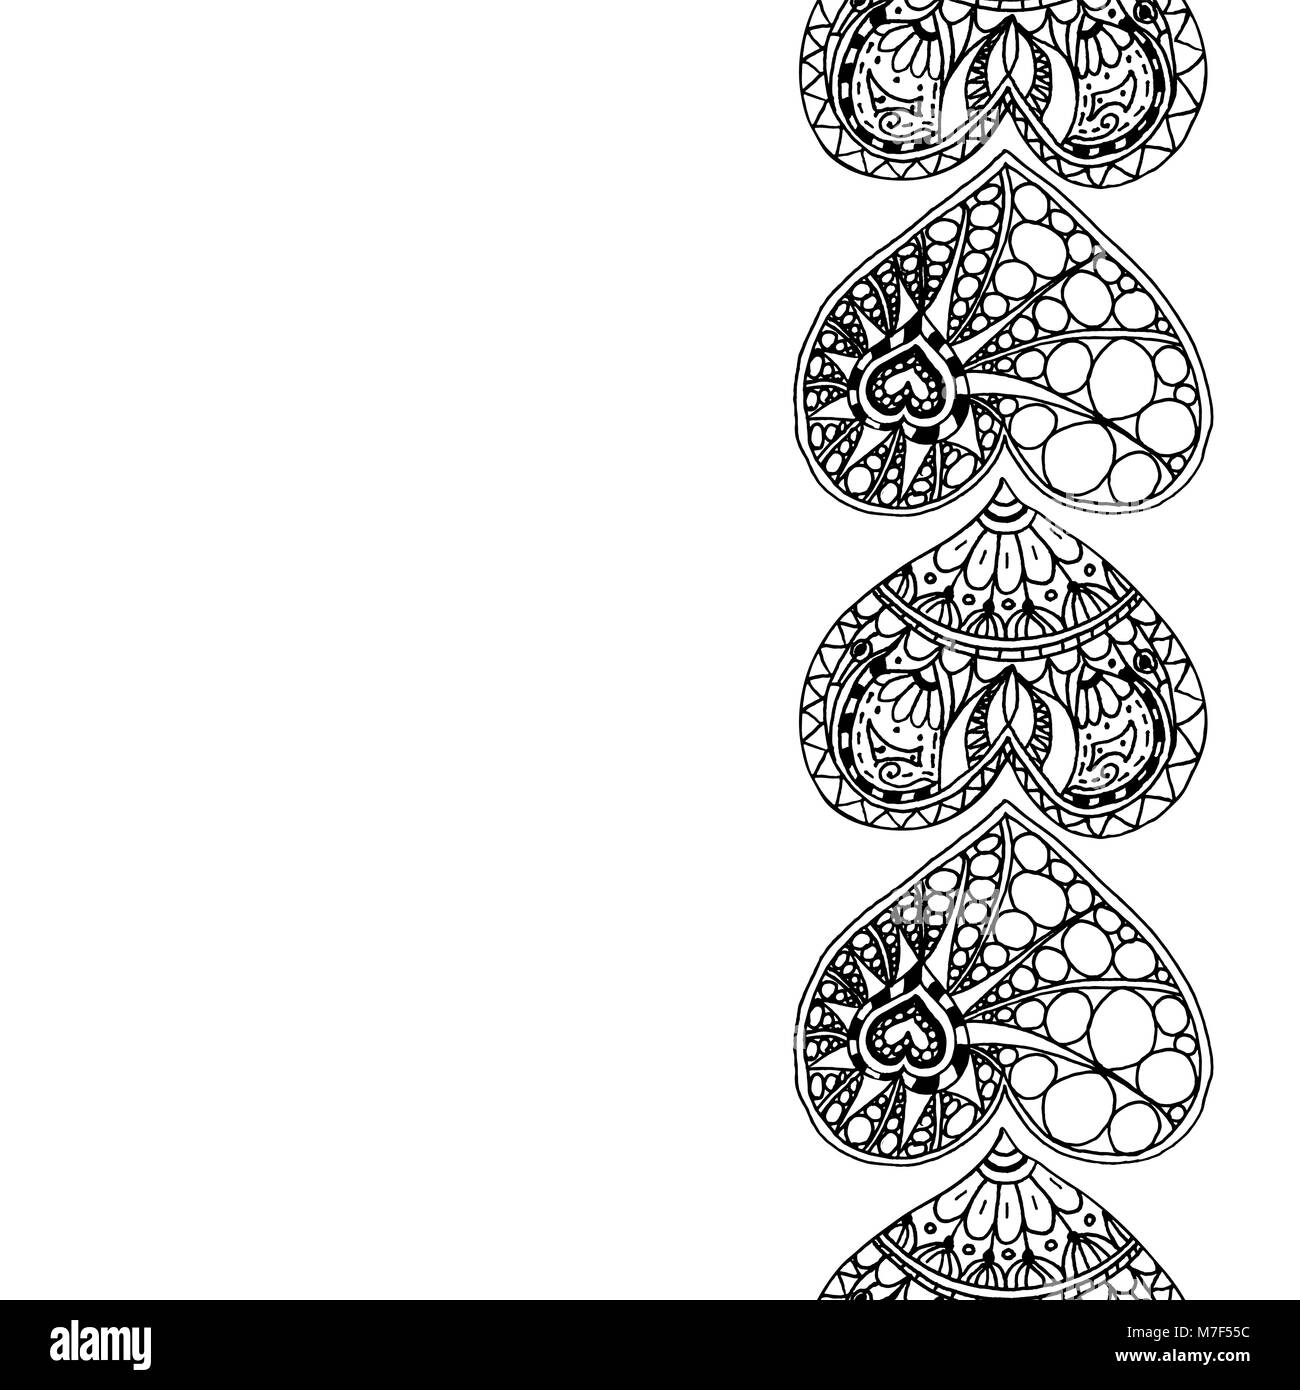 Vector Decorative Vertical Border From Black Hand Drawing Hearts On White Background Coloring Page Book Doodle Antistress For Adu